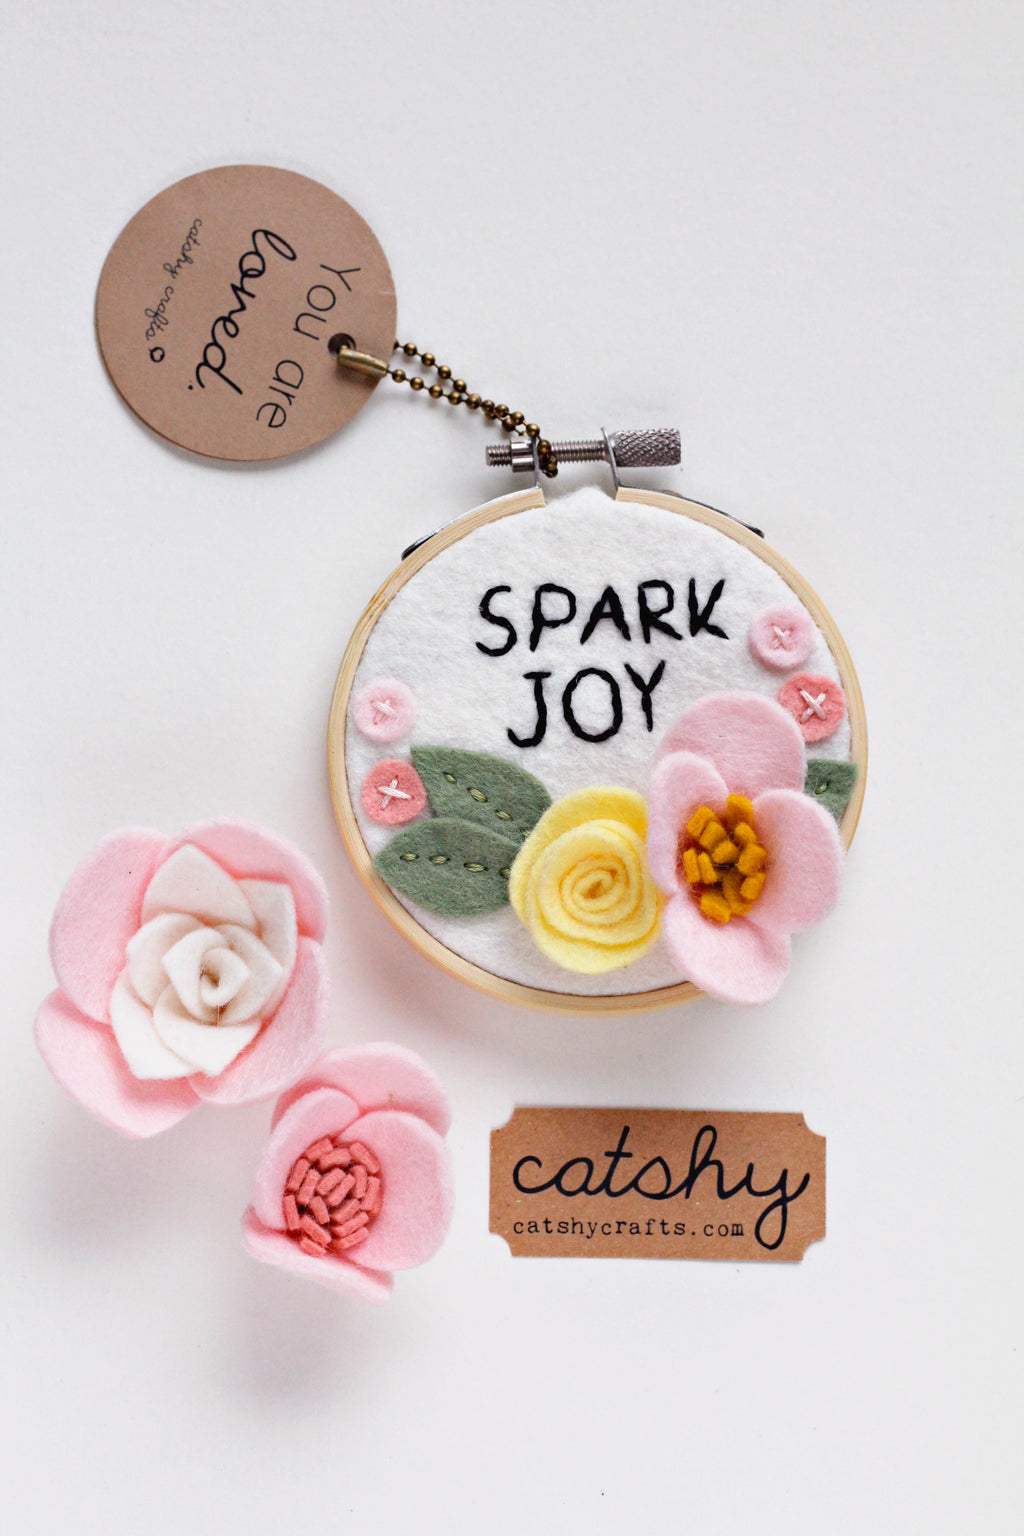 Spark Joy Mini Embroidery Hoop Art